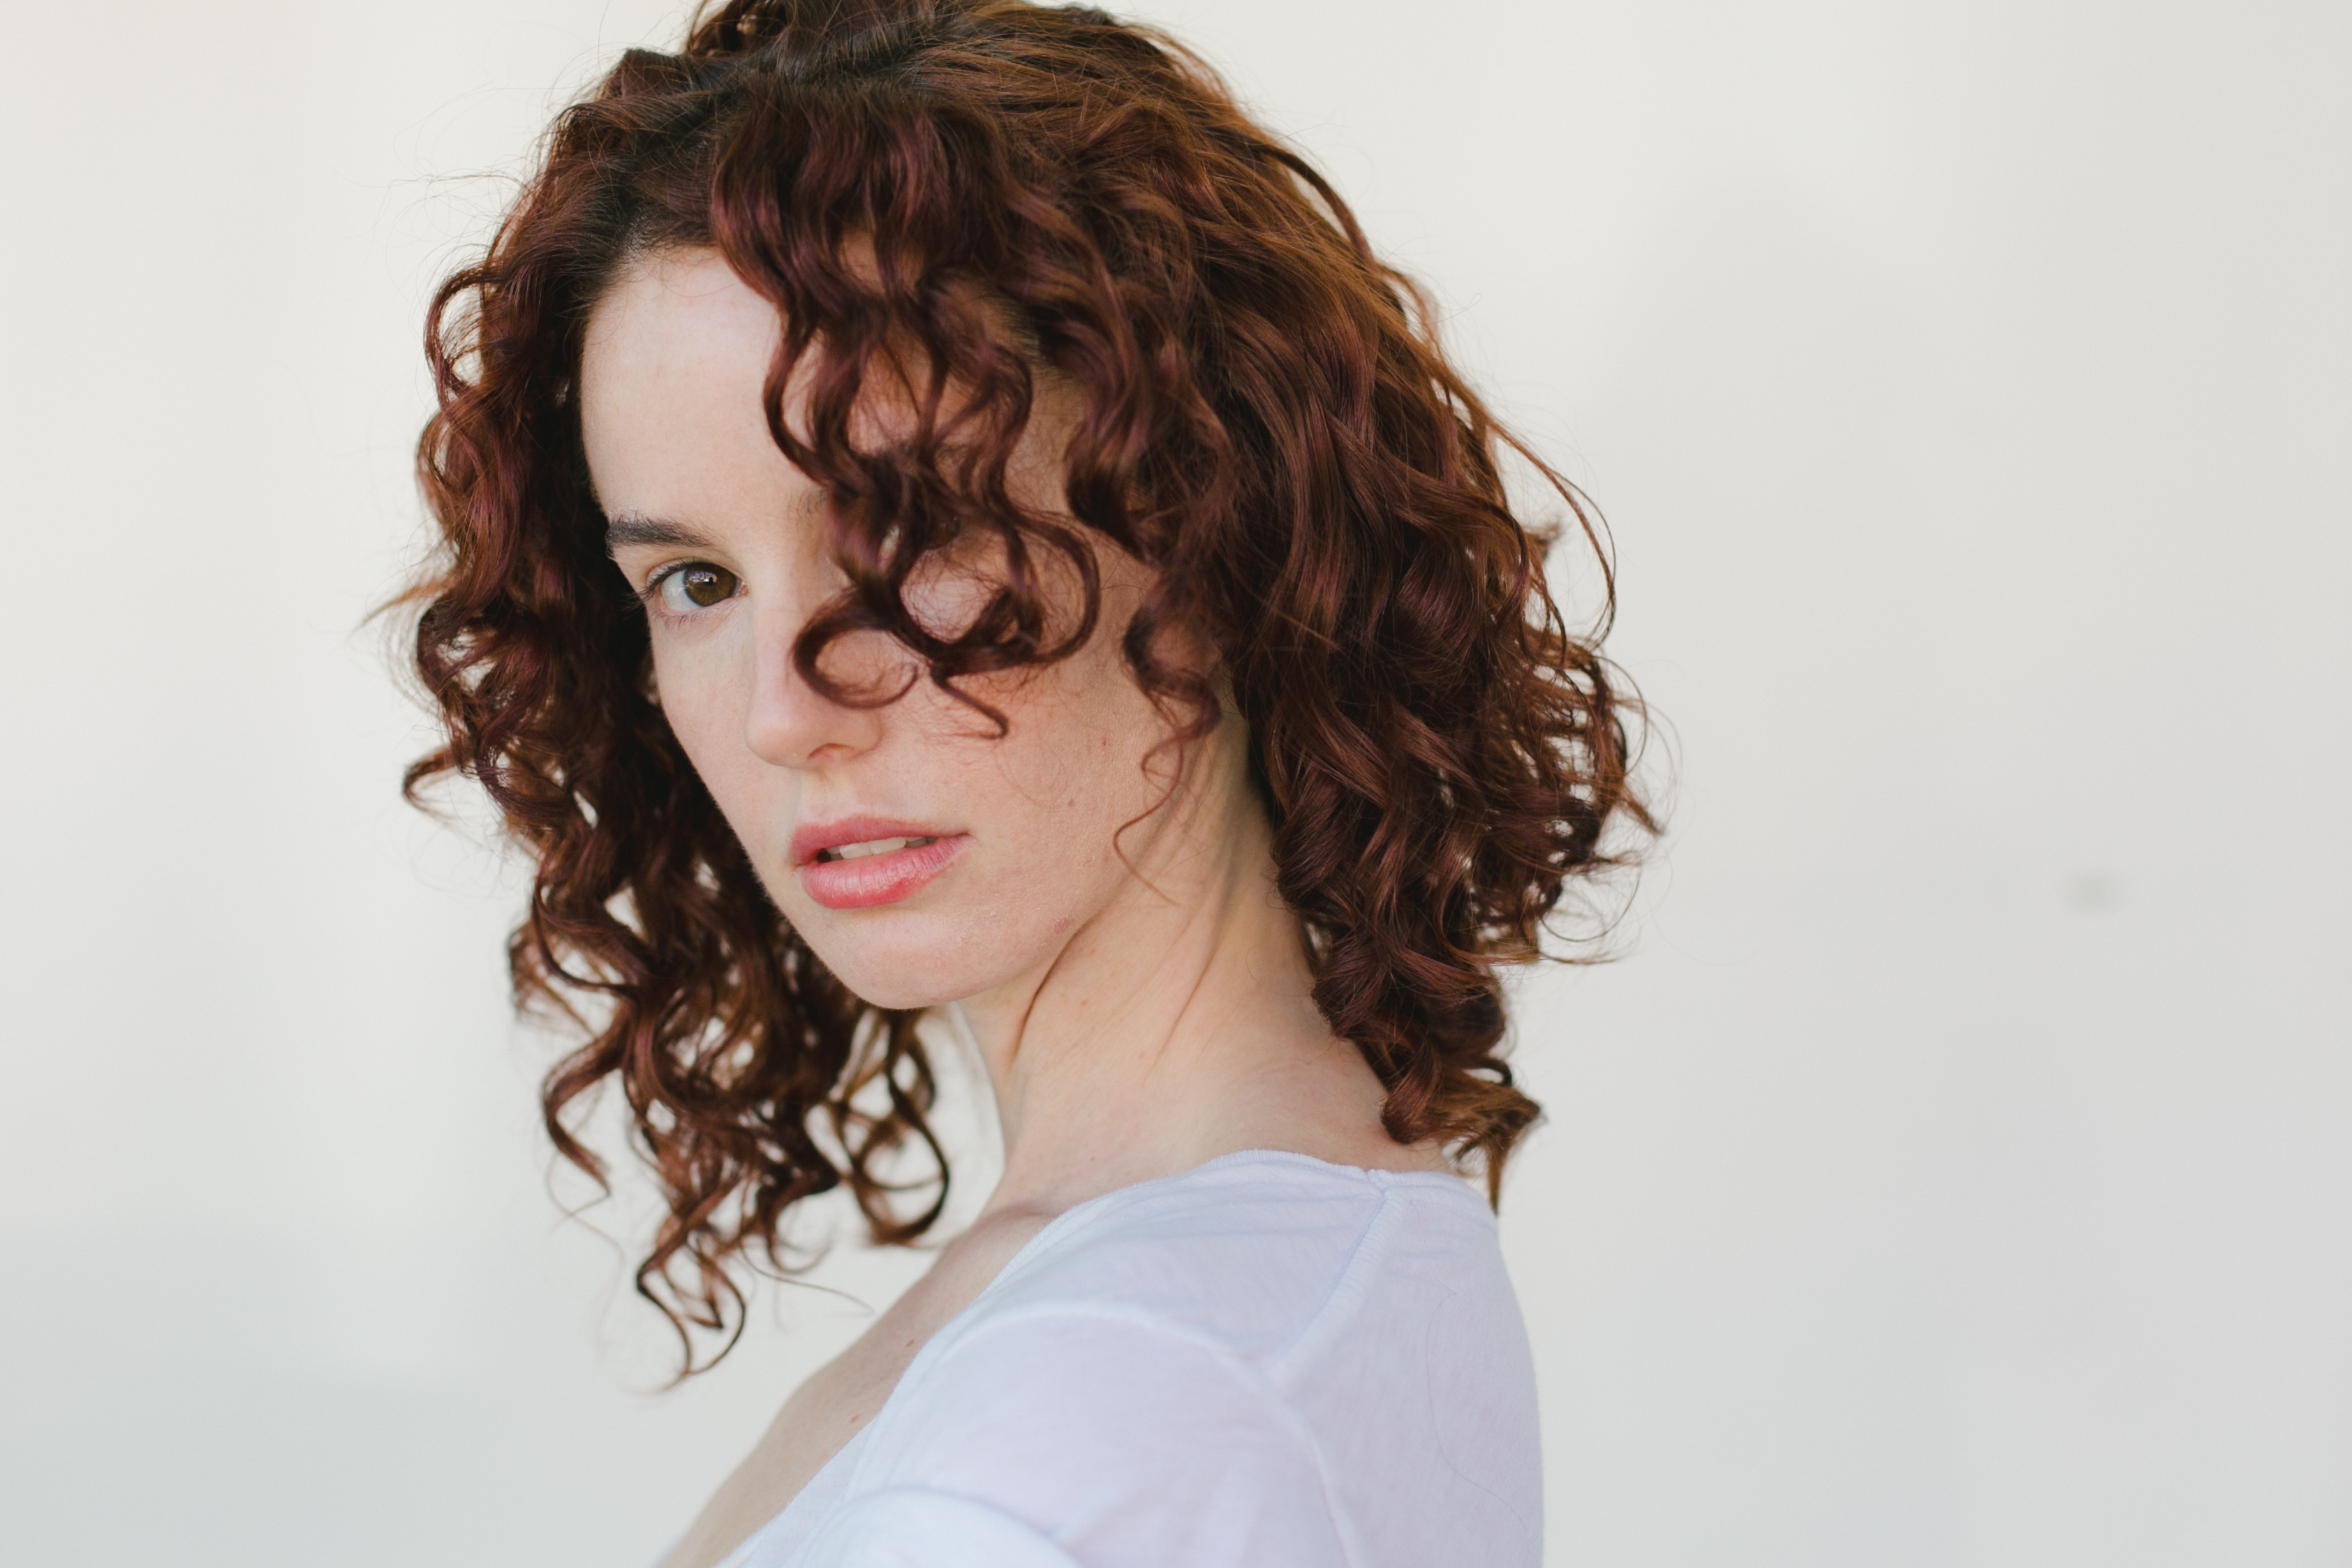 showcasing a woman's natural curly hair